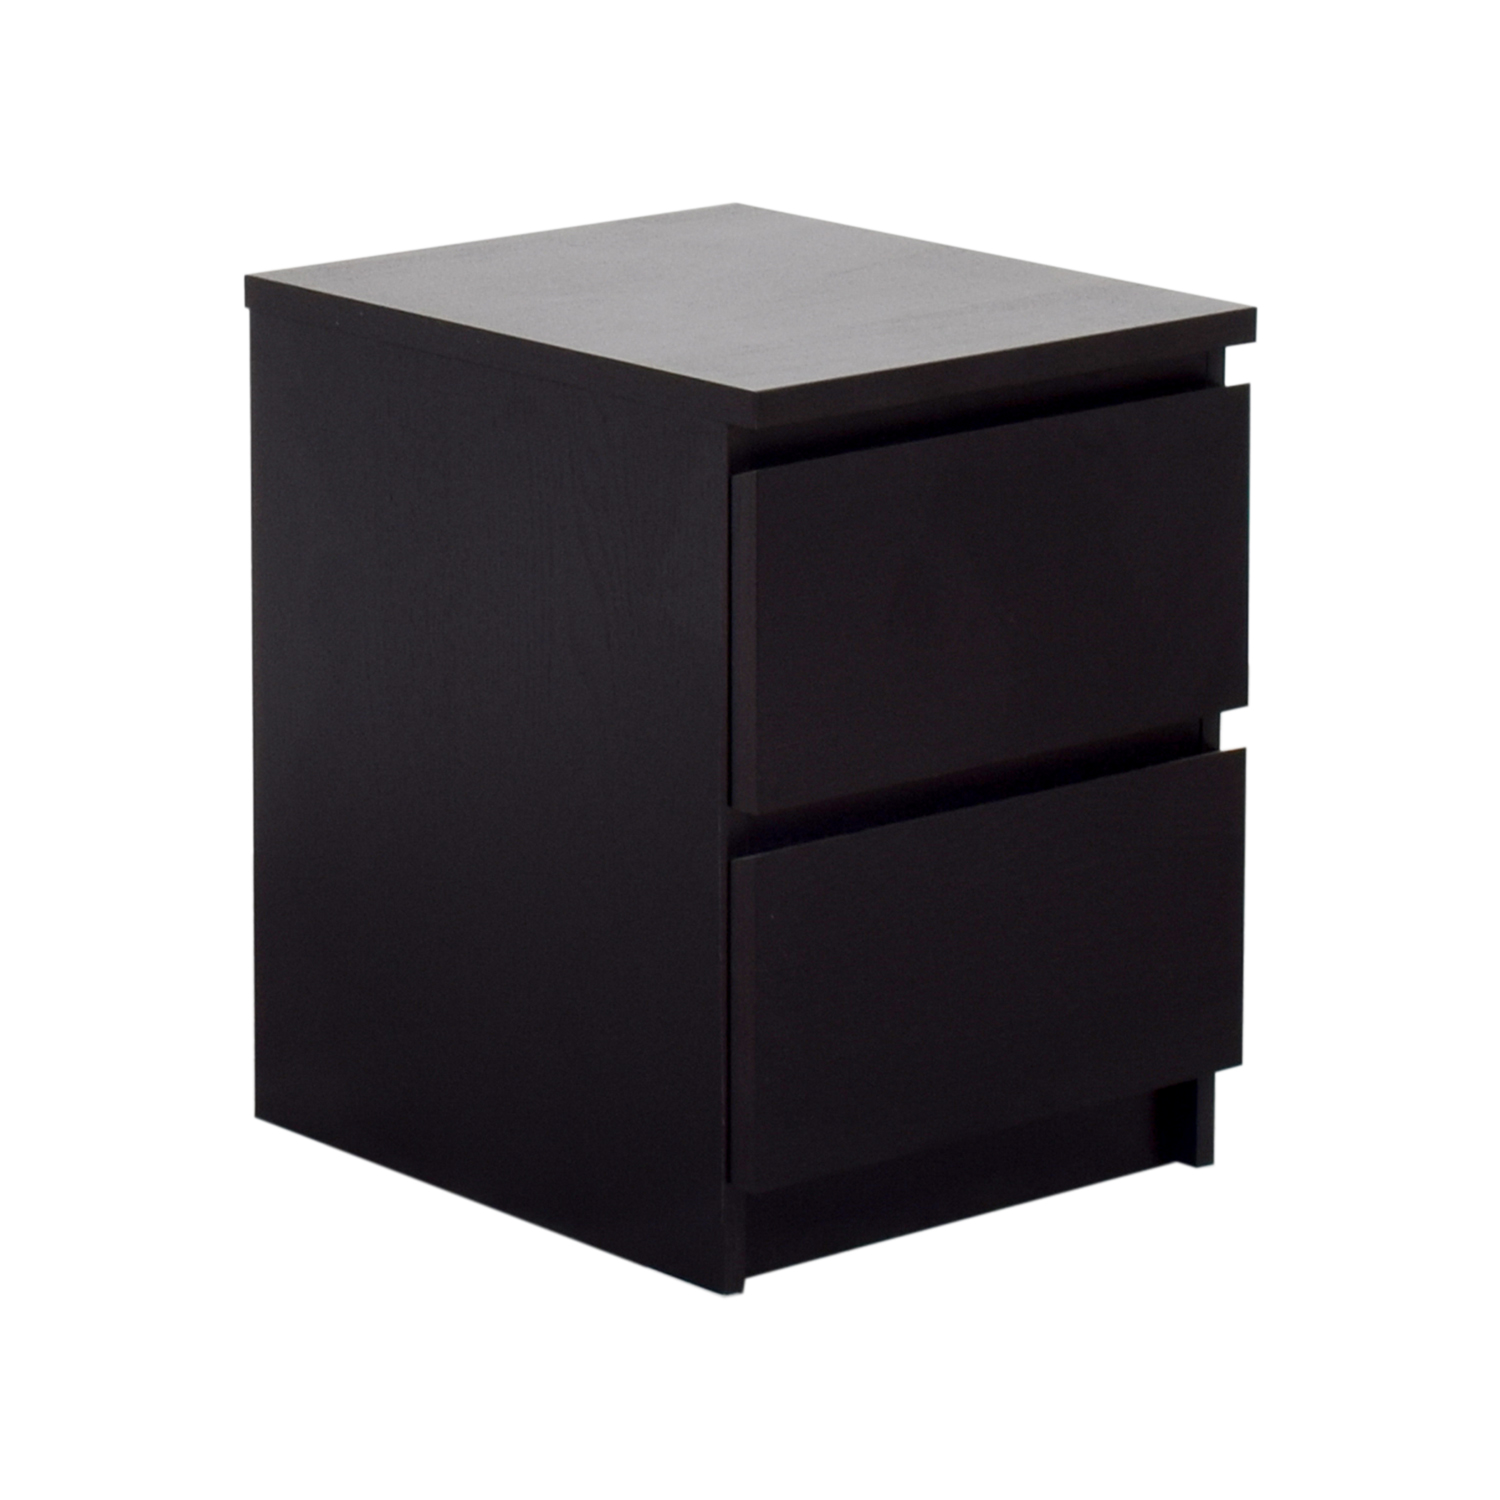 Ikea Chest Of Drawers Black Malm Priming Ikea Malm Chest Of Drawers Furniture For Painting Ikea